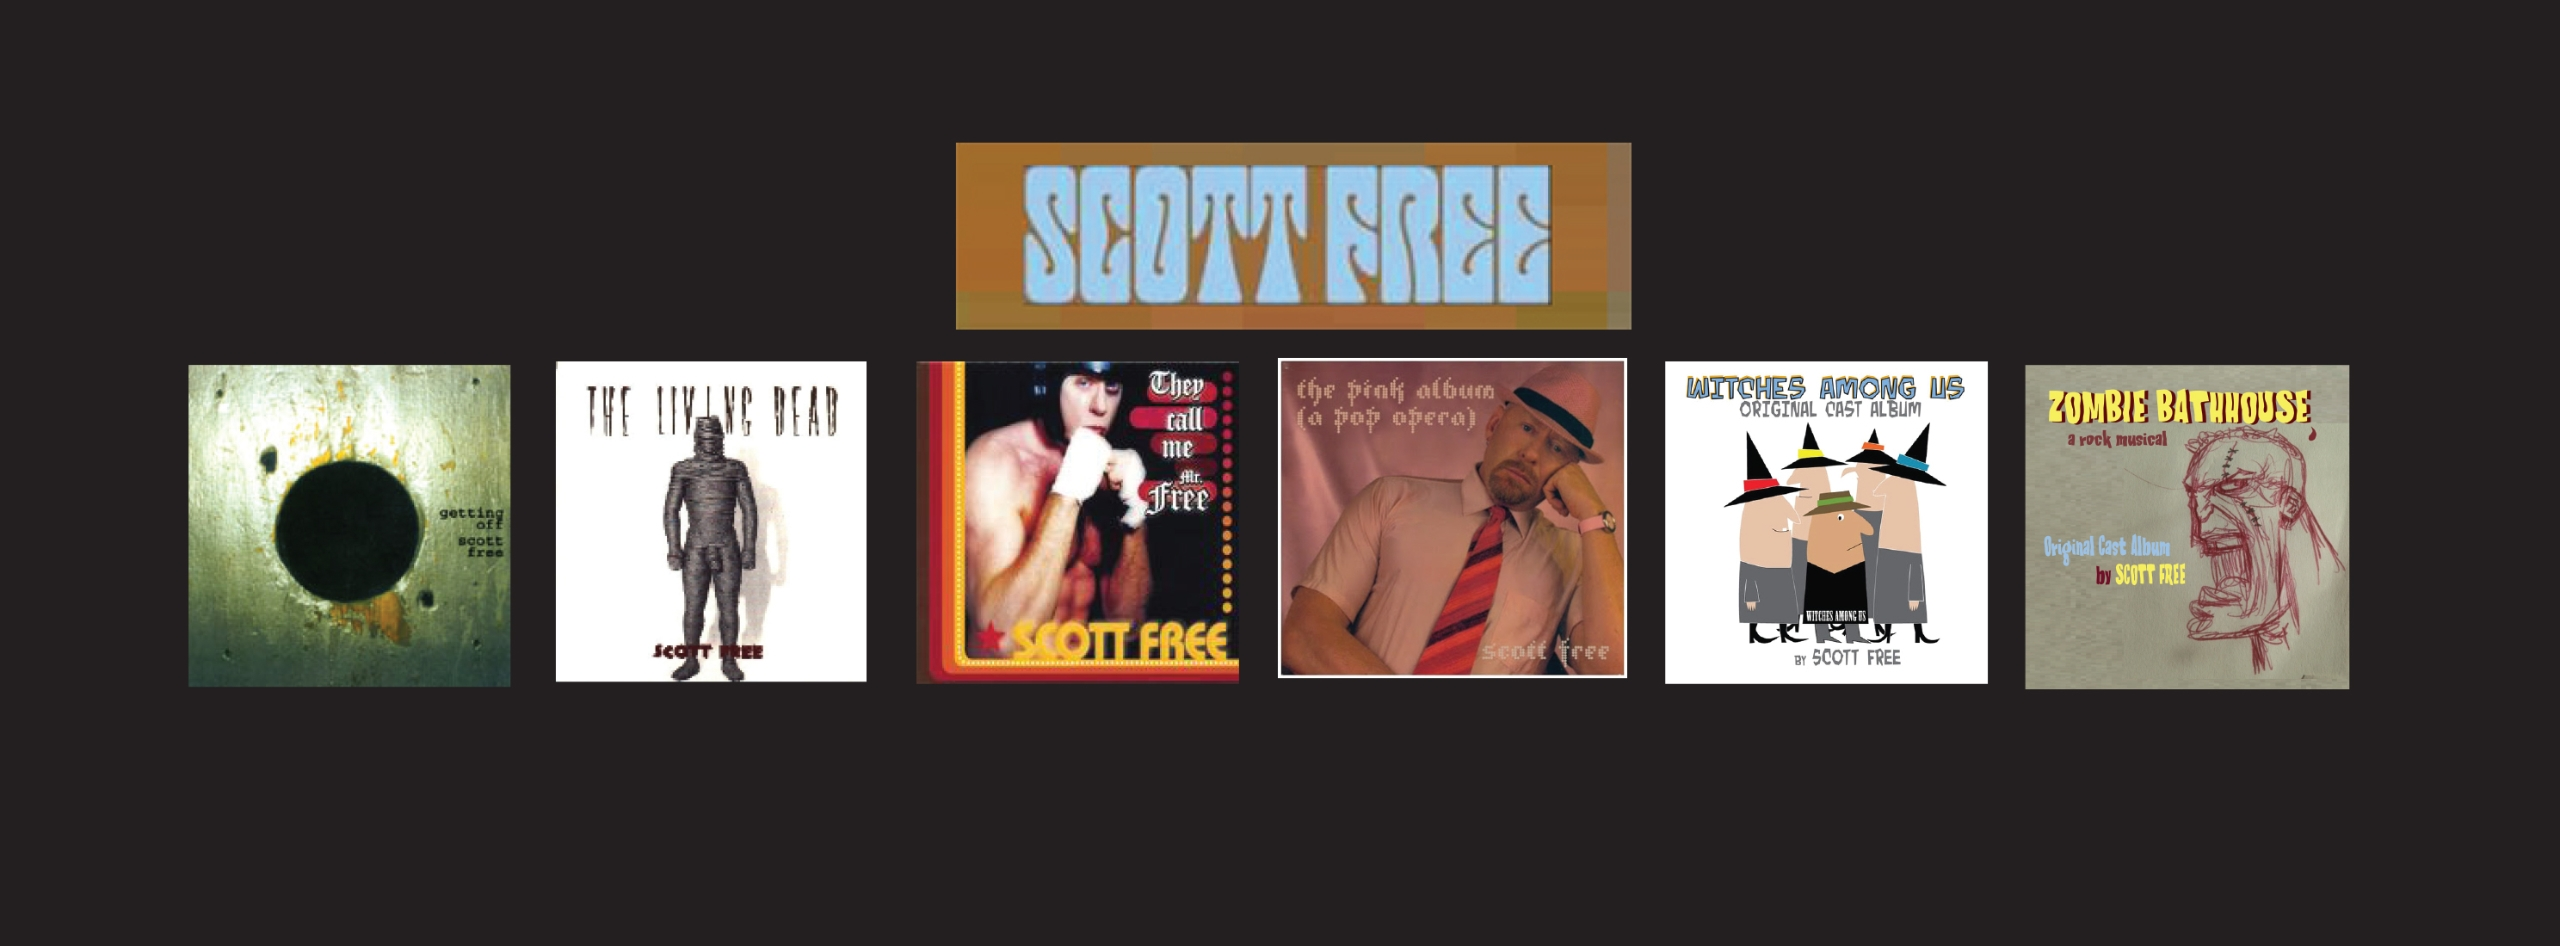 (@thescottfree) Cover Image